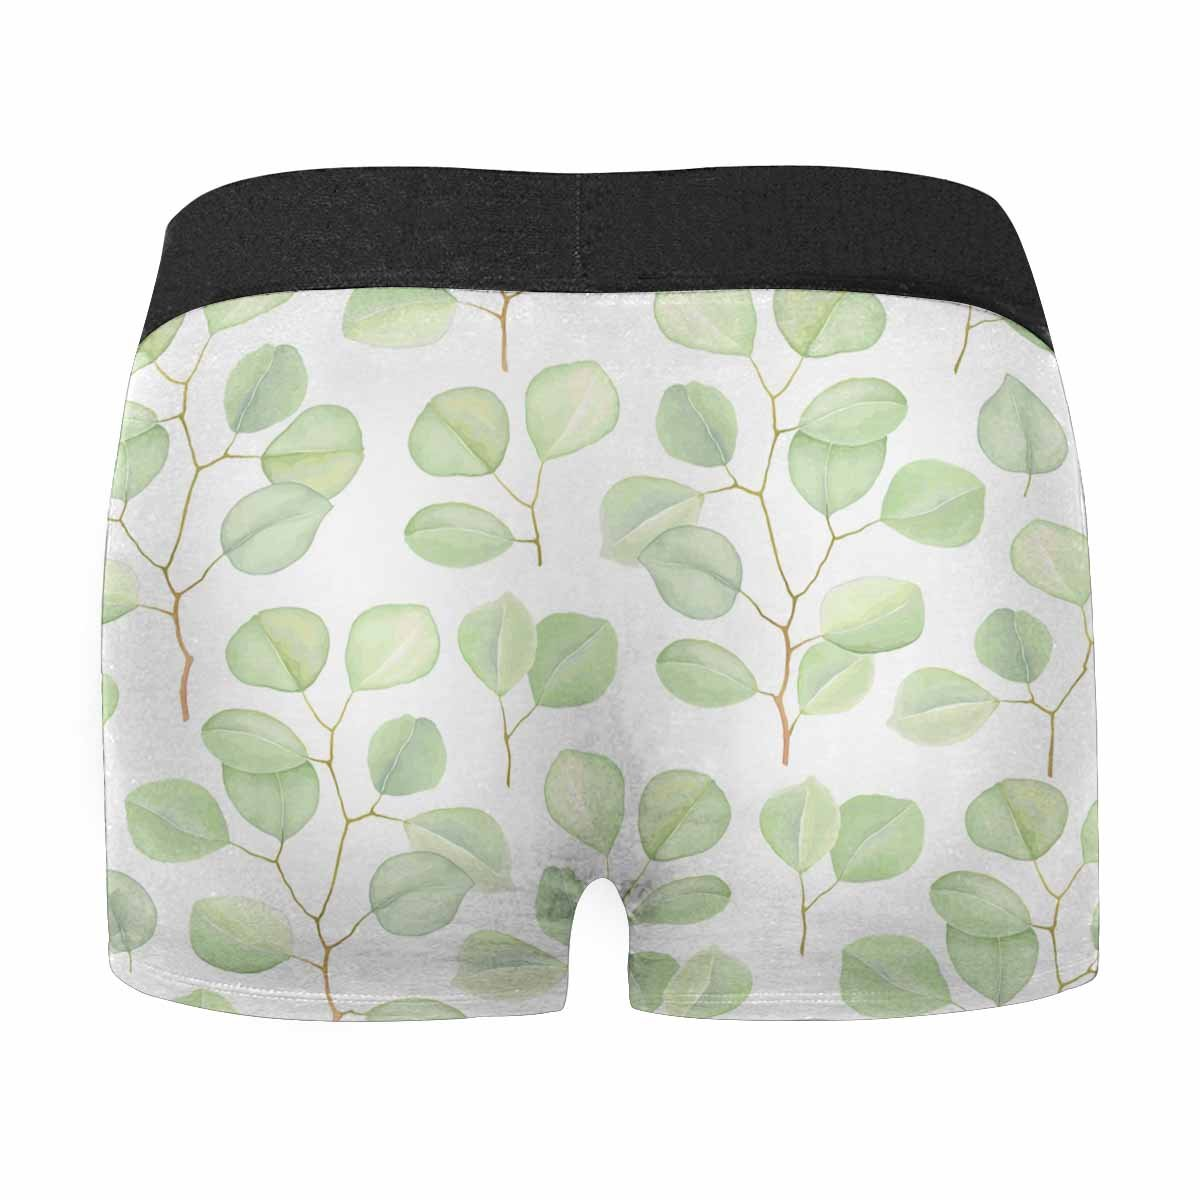 INTERESTPRINT Mens All-Over Print Boxer Briefs Greenery with Branches Silver Dollar Eucalyptus XS-3XL